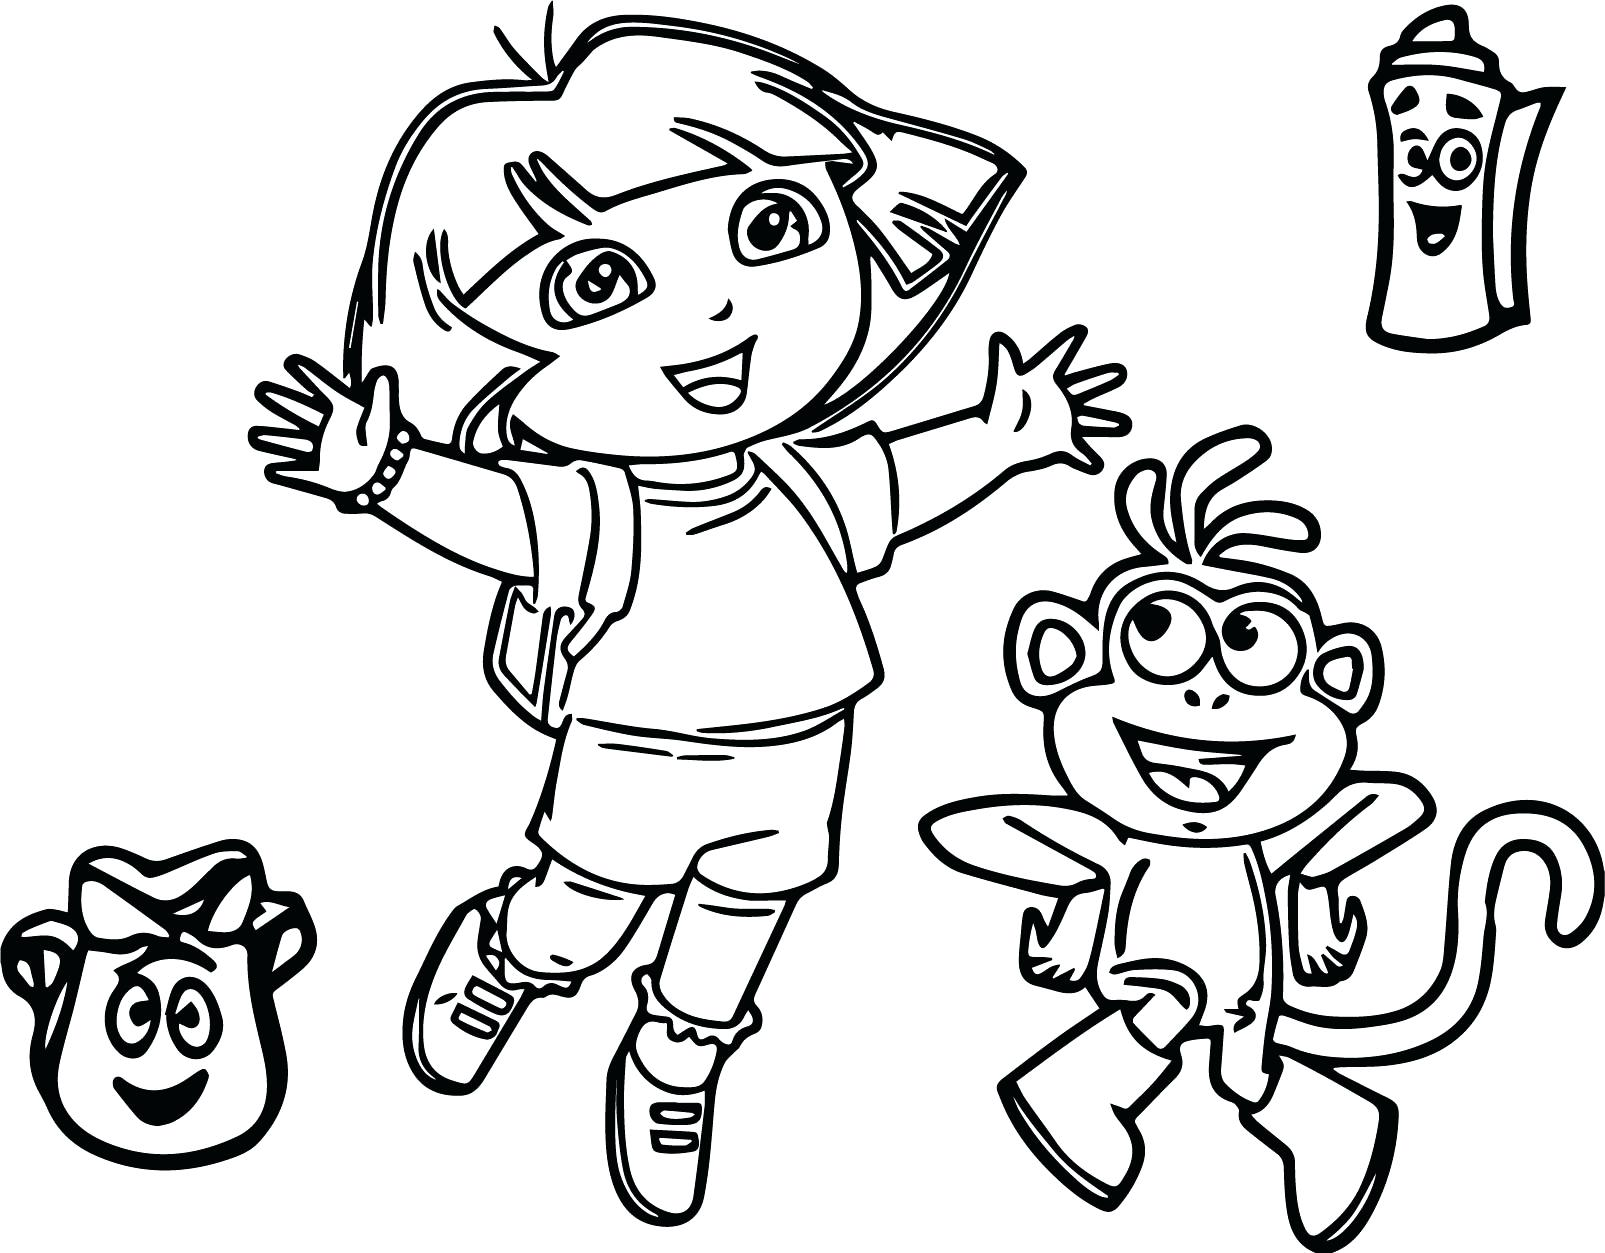 1605x1253 Dora And Friends Coloring Pages Pdf Explorer Cartoon Page Playing